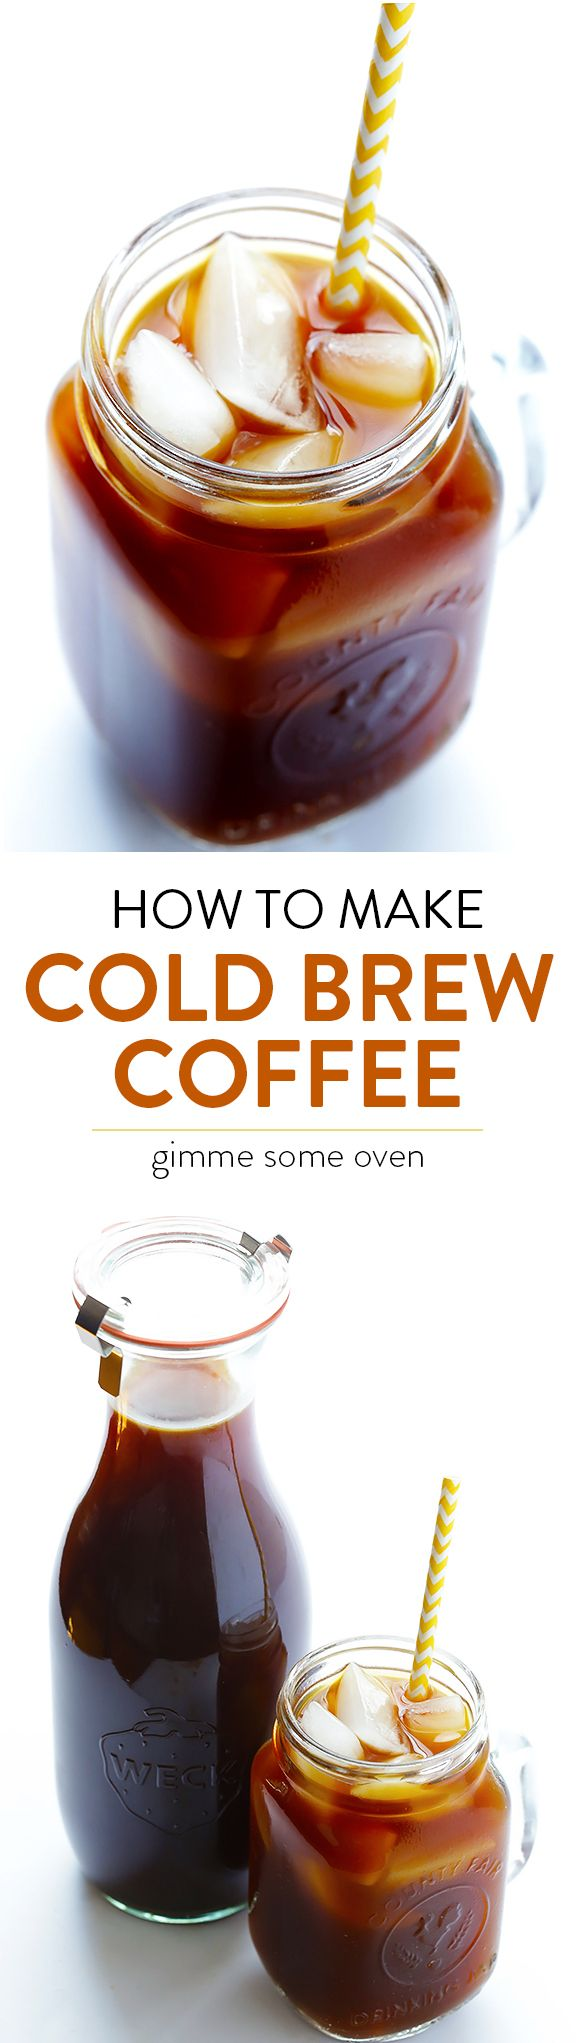 Learn how to make cold brew coffee with this step-by-step tutorial and recipe. It's…